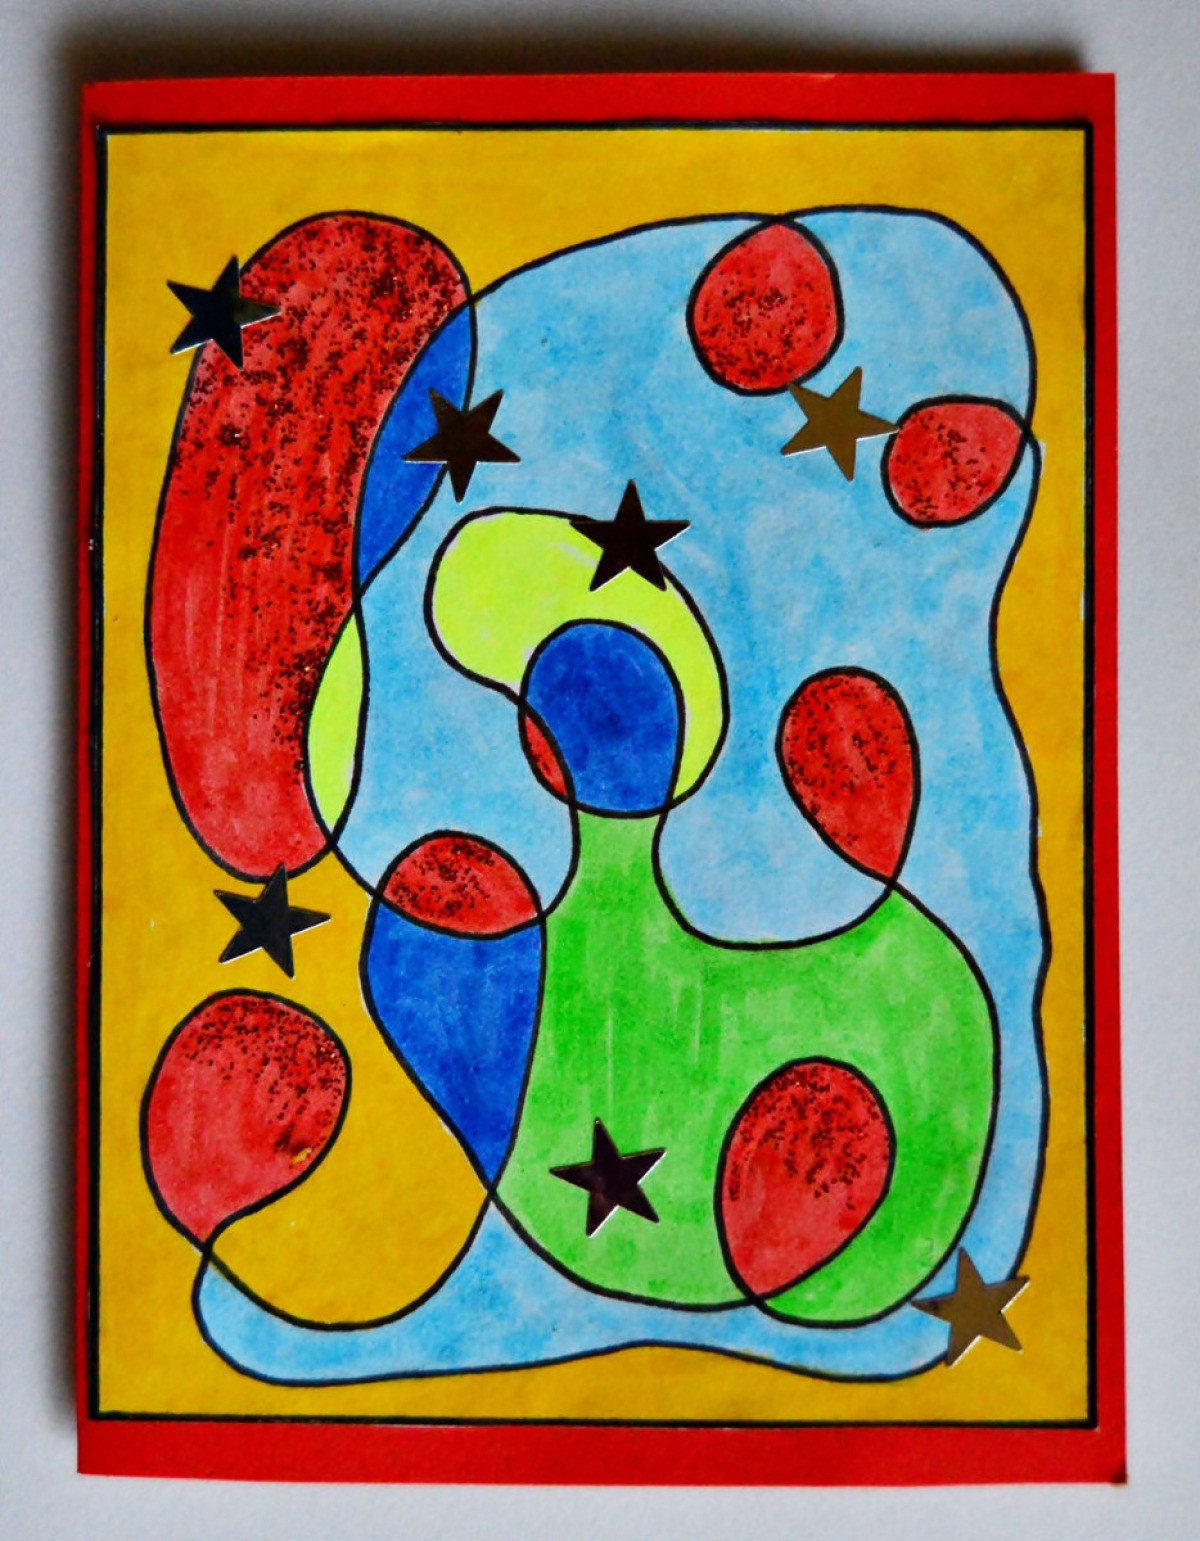 How to make modern art Youtube Draw And Color Tangled Squiggle Pattern And Turn It Into Modern Birthday Card This Project Is An Easy Way For Kids To Make Their Own Cards For Their Hgtvcom Modern Art Card Project For Kids Thriftyfun